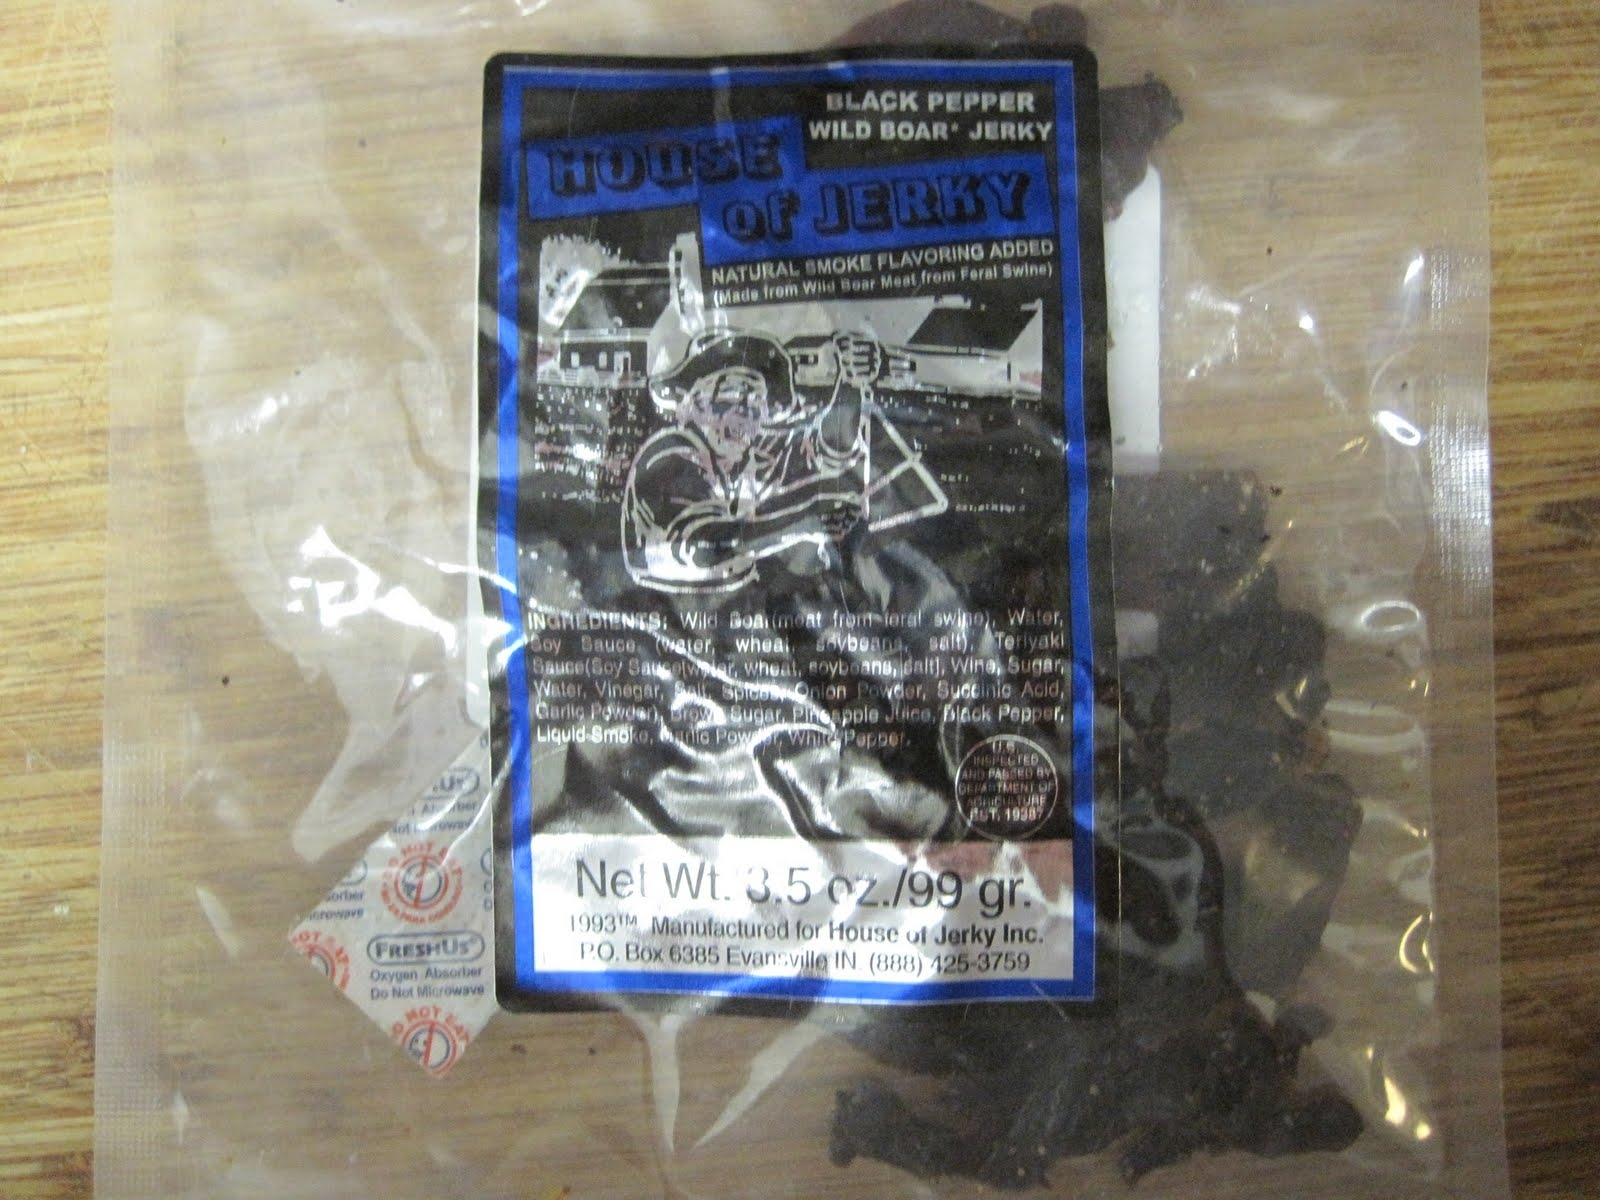 Black Pepper Wild Boar Jerky